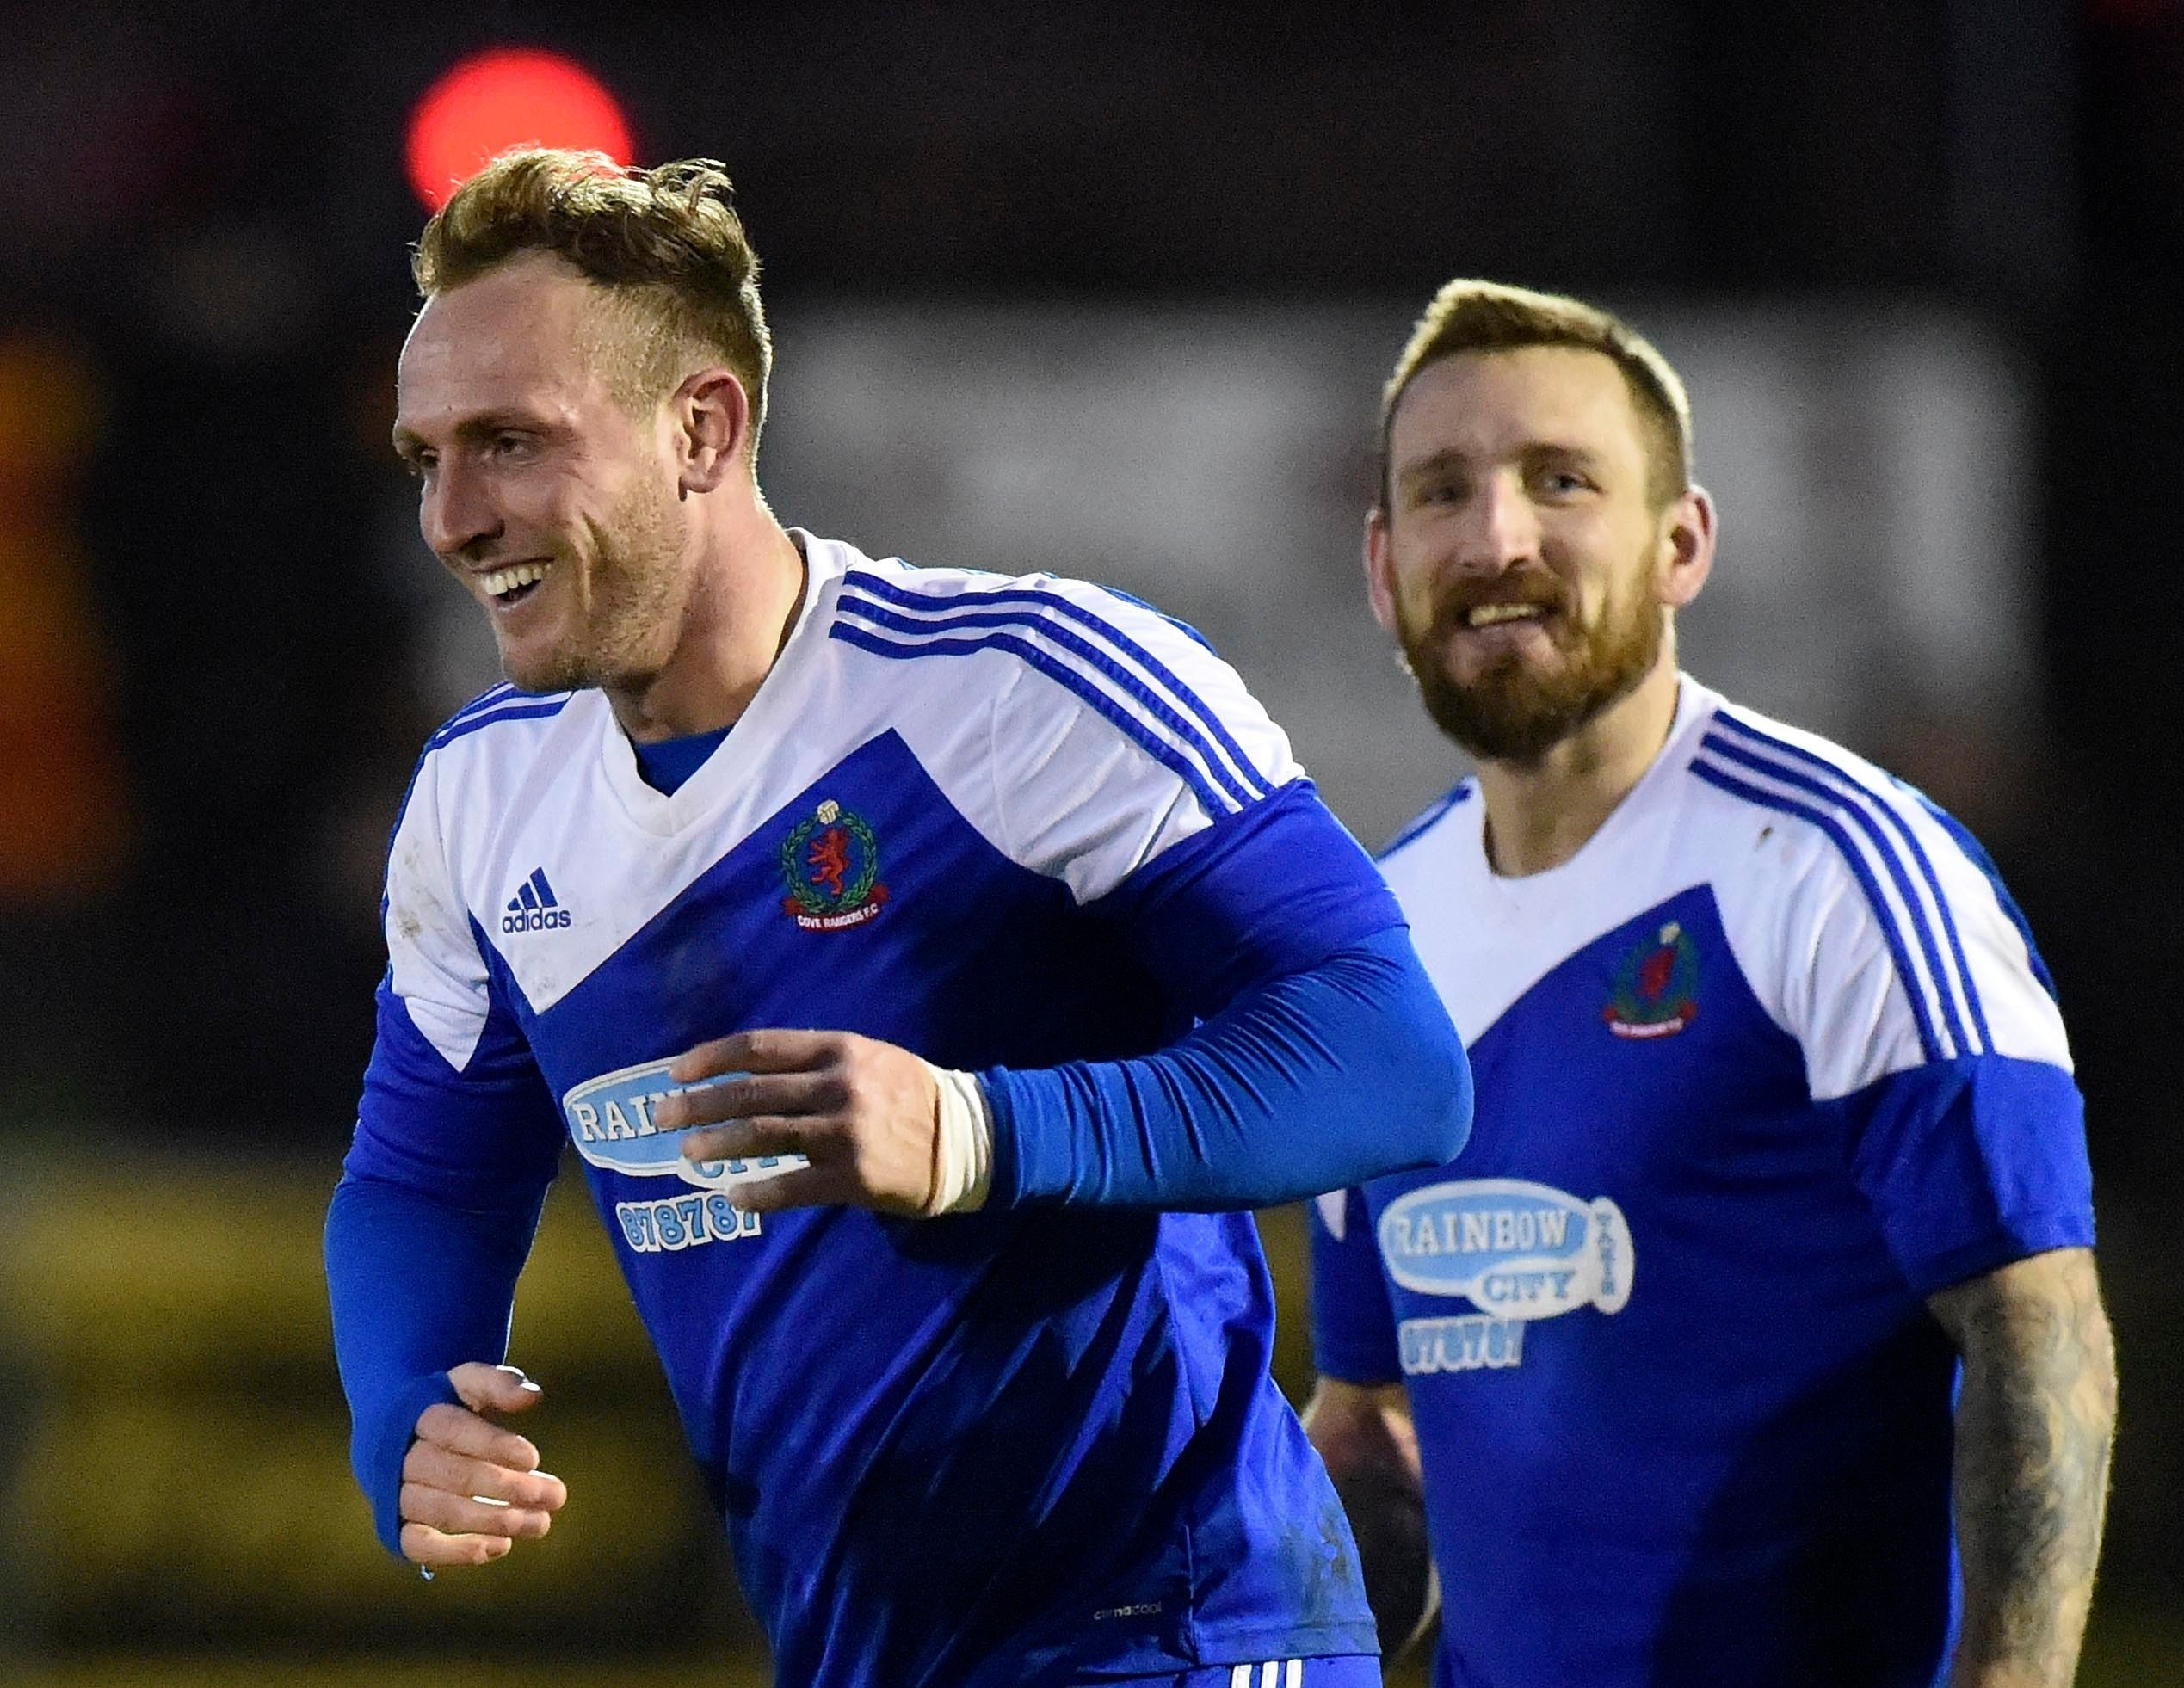 Jonny Smith has opted to leave Cove Rangers.